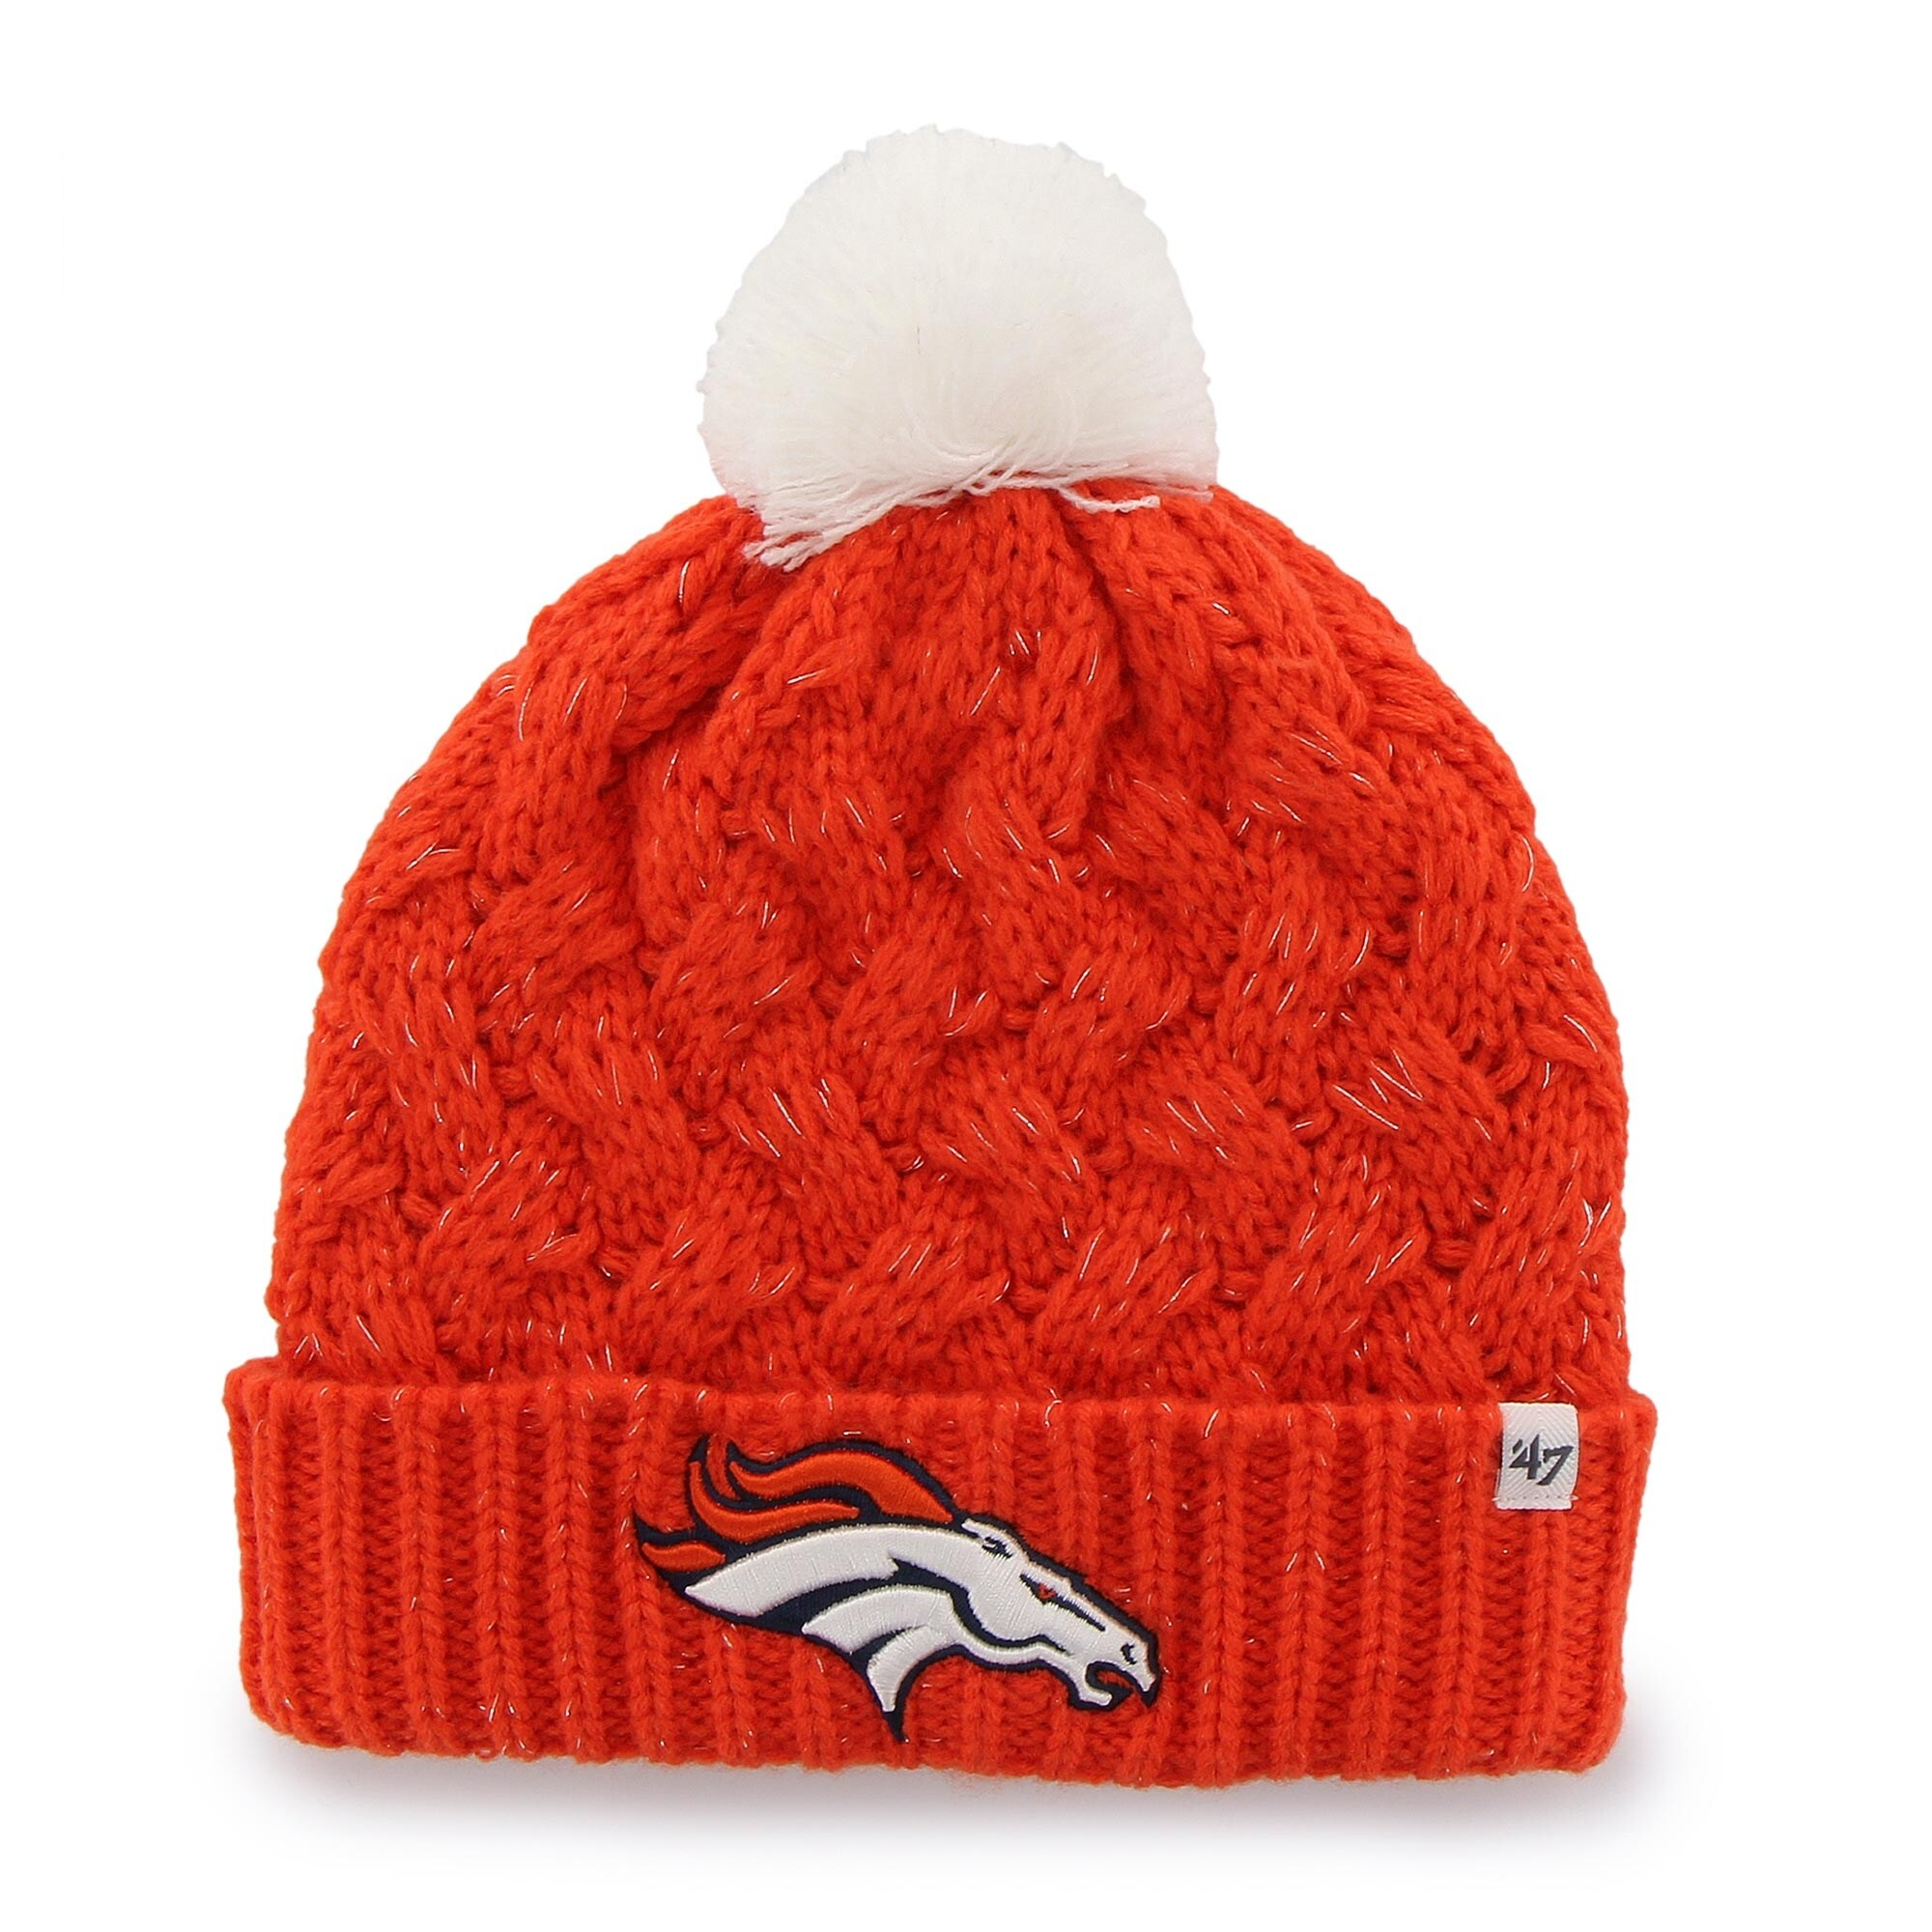 Denver Broncos '47 Brand Womens Fiona Cuff With Pom Knit Beanie - Orange